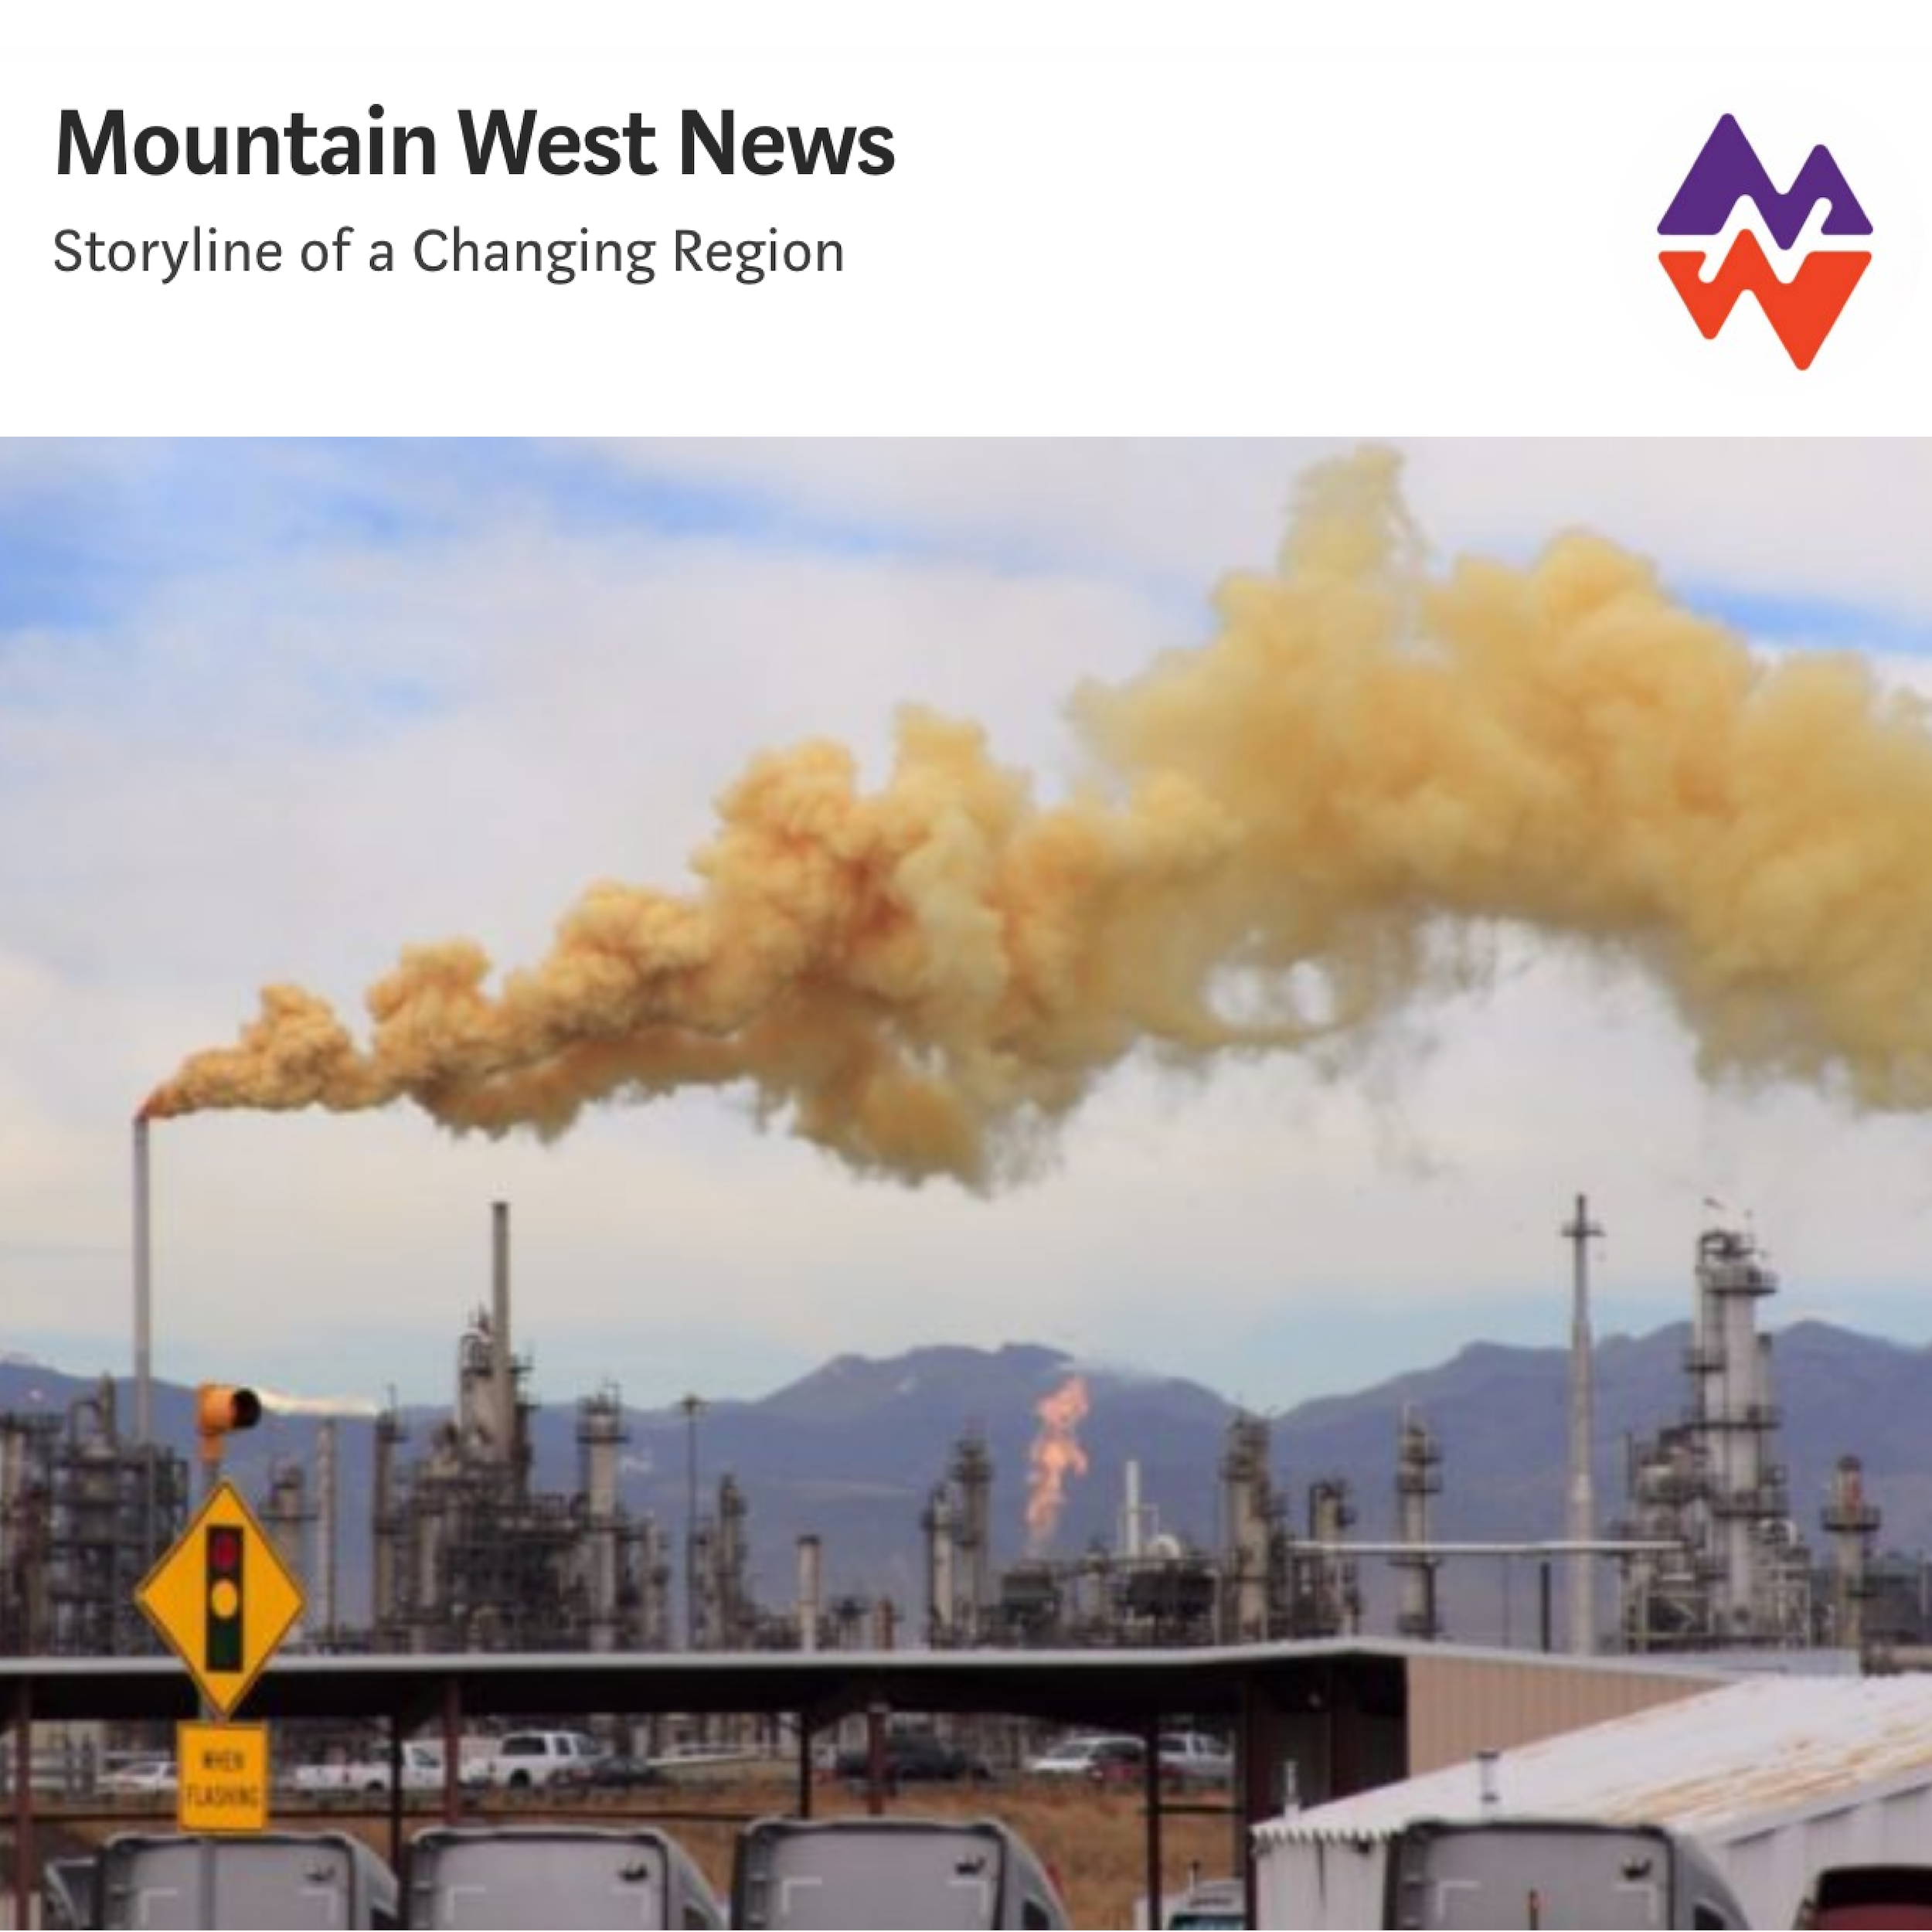 North Denver refinery spews tons of cyanide gas - Suncor Energy's oil refinery is spewing 8.5 tons a year of invisible hydrogen cyanide gas over low-income north Denver neighborhoods, state records show. The emission level was revealed as the company sought to use a legal loophole to avoid disclosure.